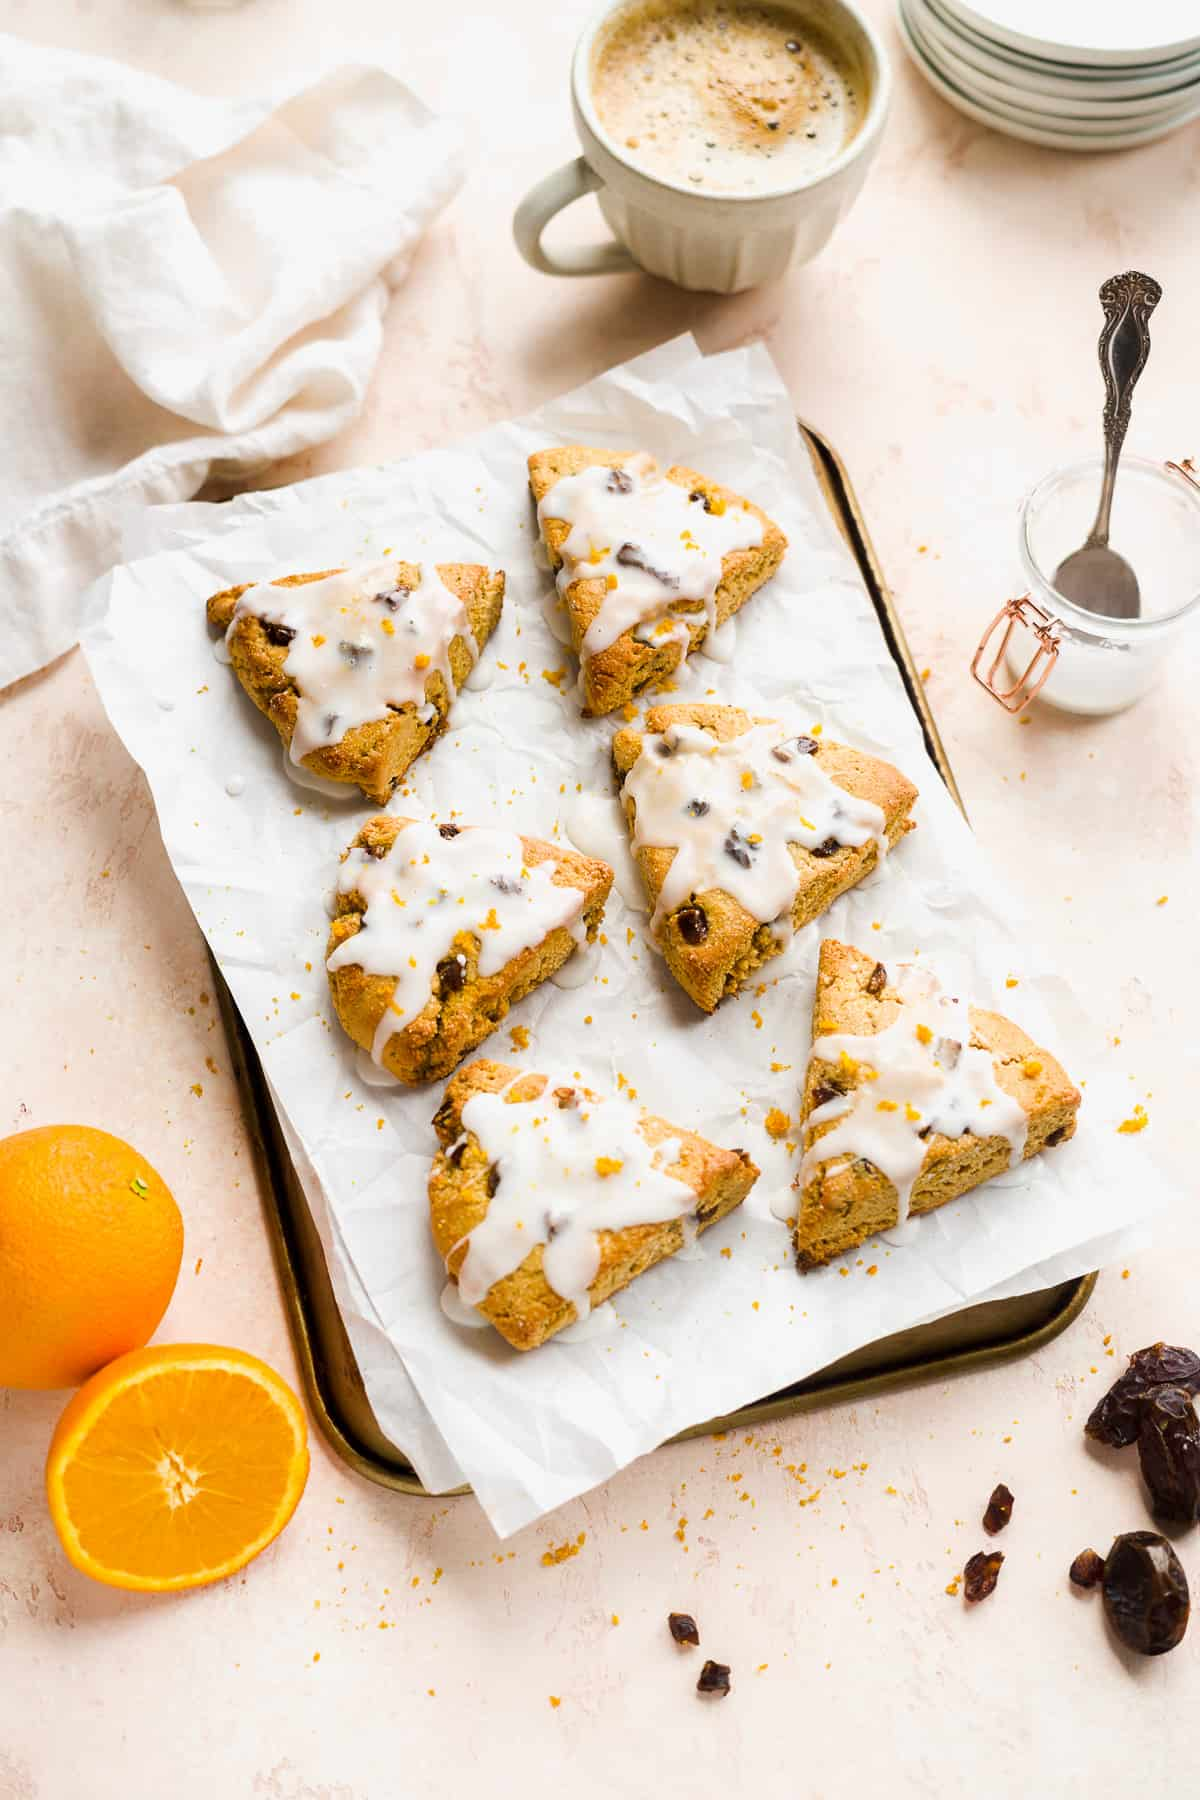 Triangular scones with glaze on parchment paper on top of a baking sheet with orange on the side.